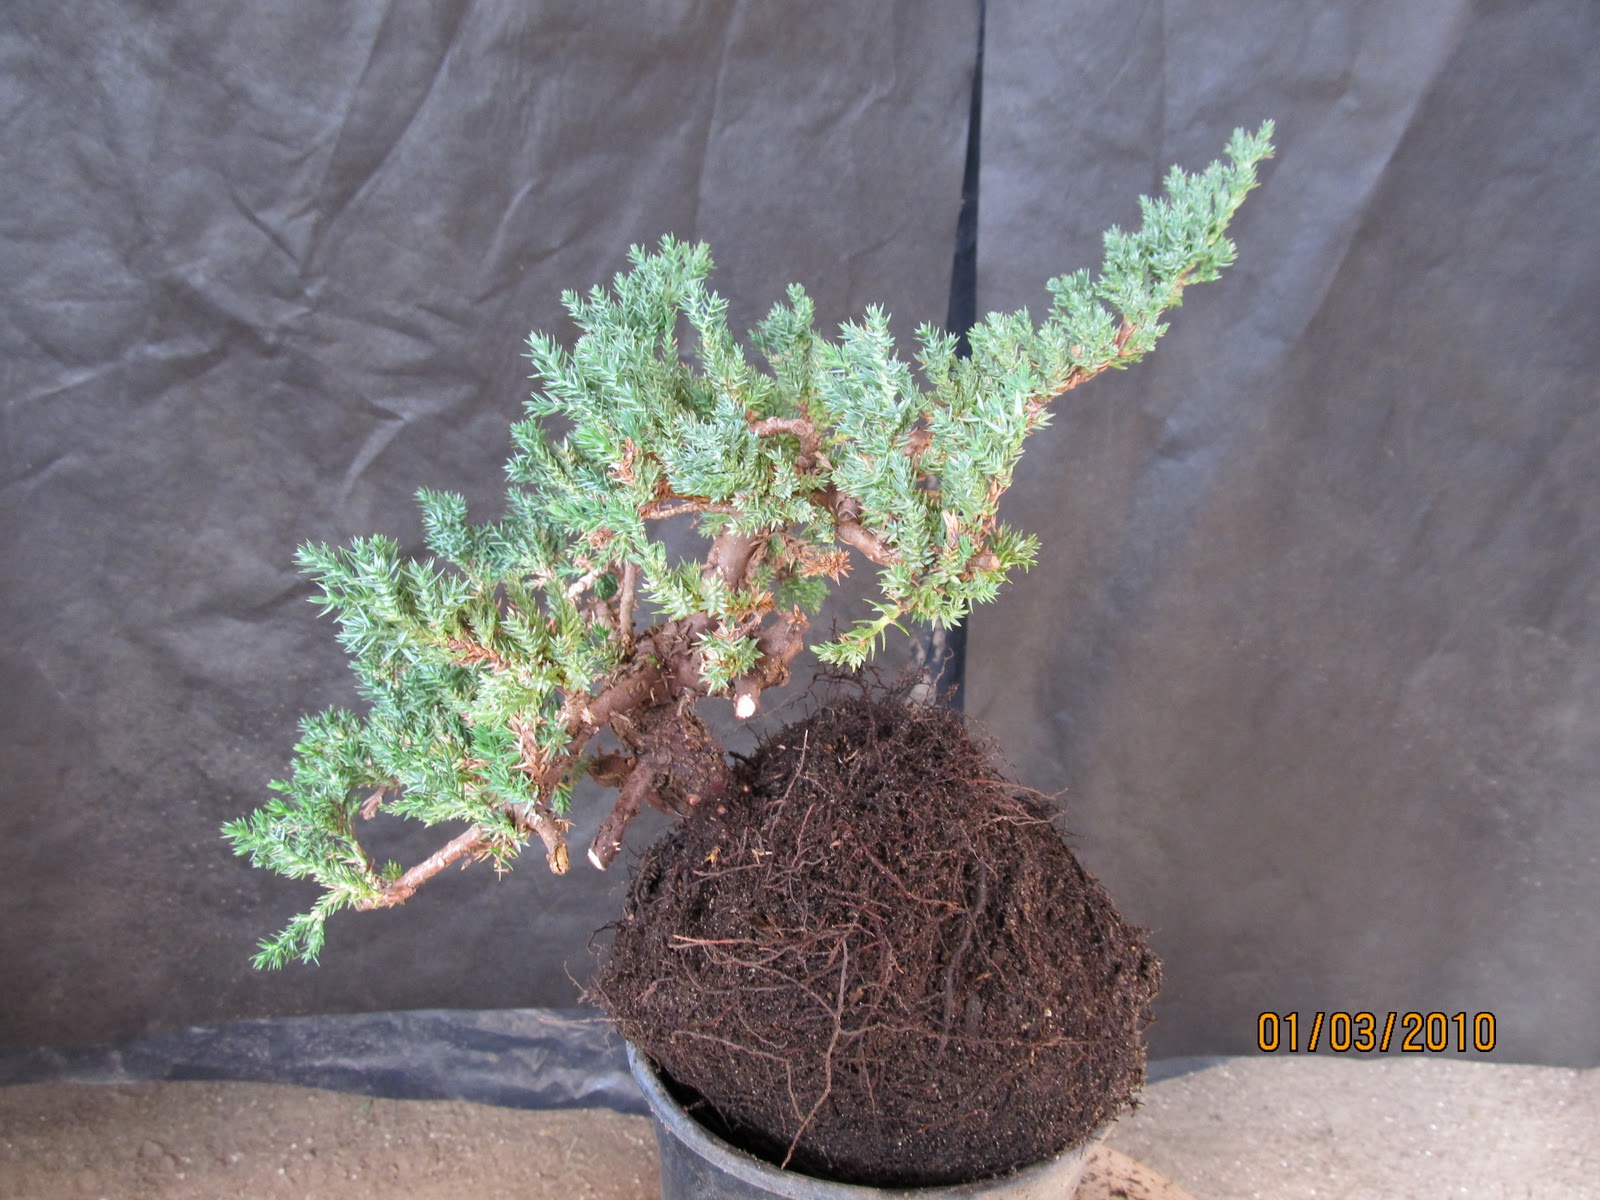 Bonsaibp39s Bonsai Blog Starting Your Bonsai With Nursery Plants